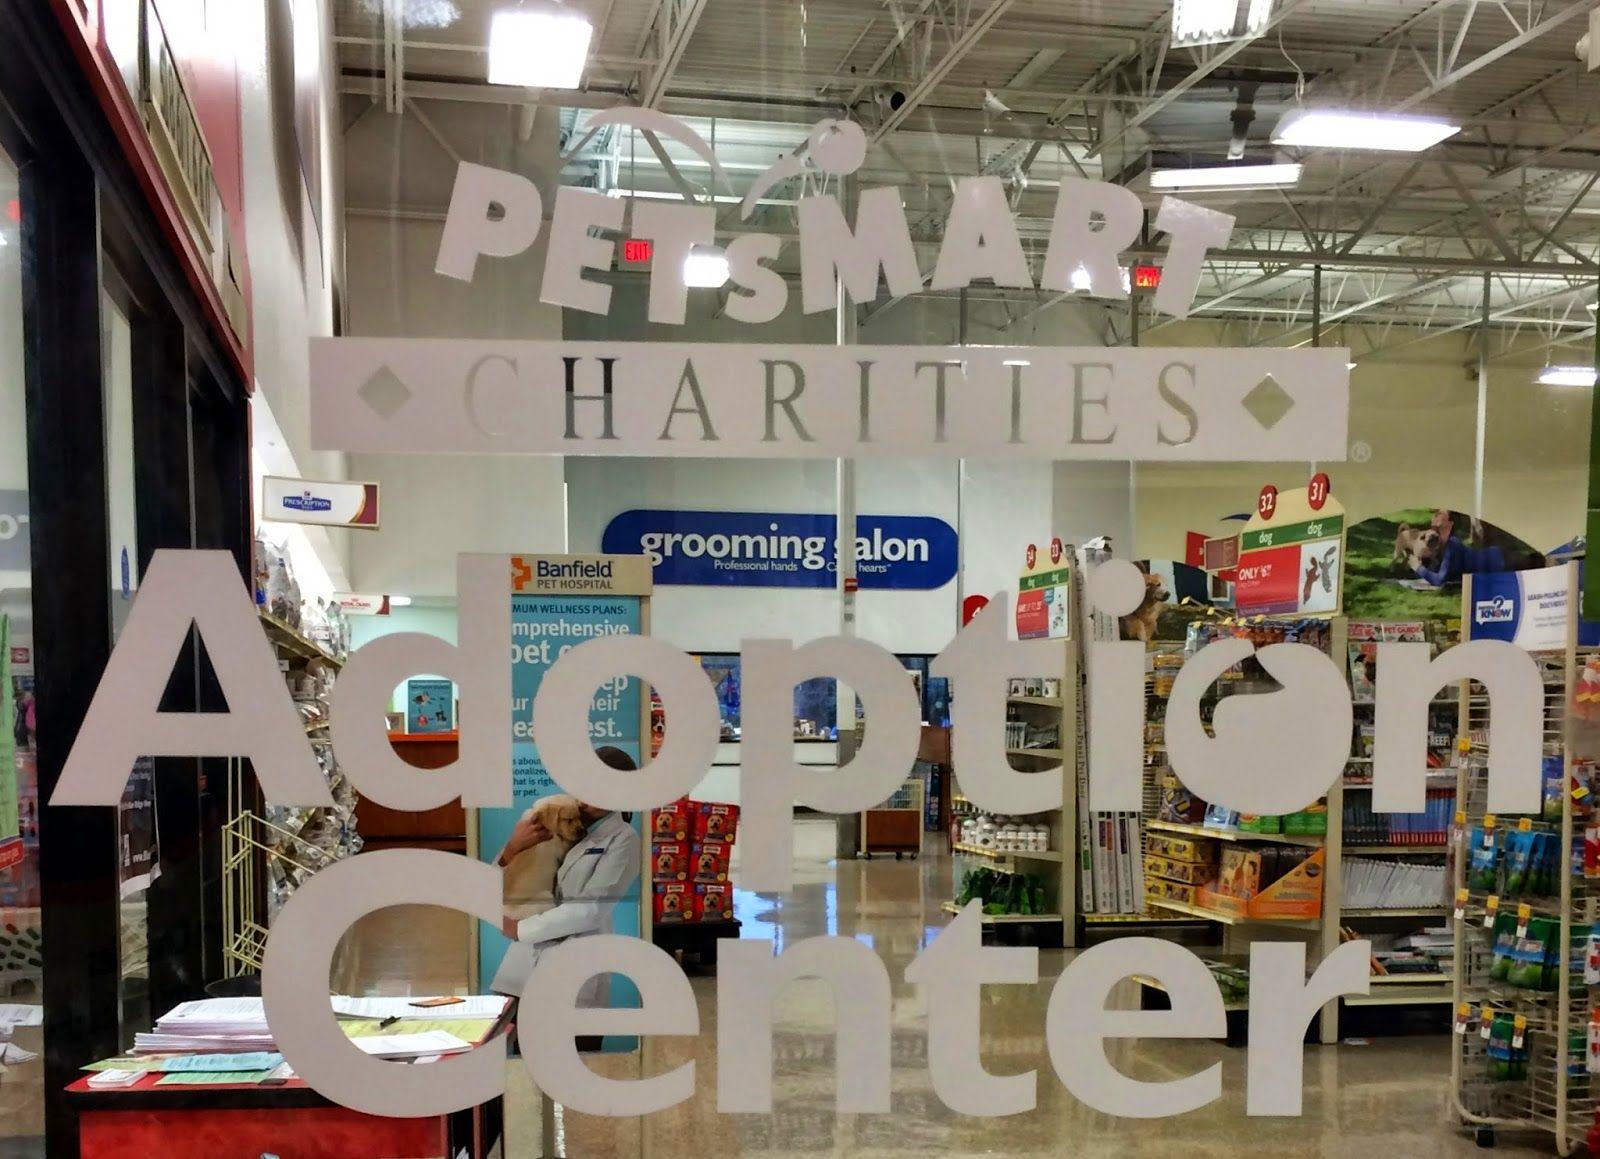 It S A Win Win Times Infinity With Images Cat Shelter Petsmart Rescue Stories